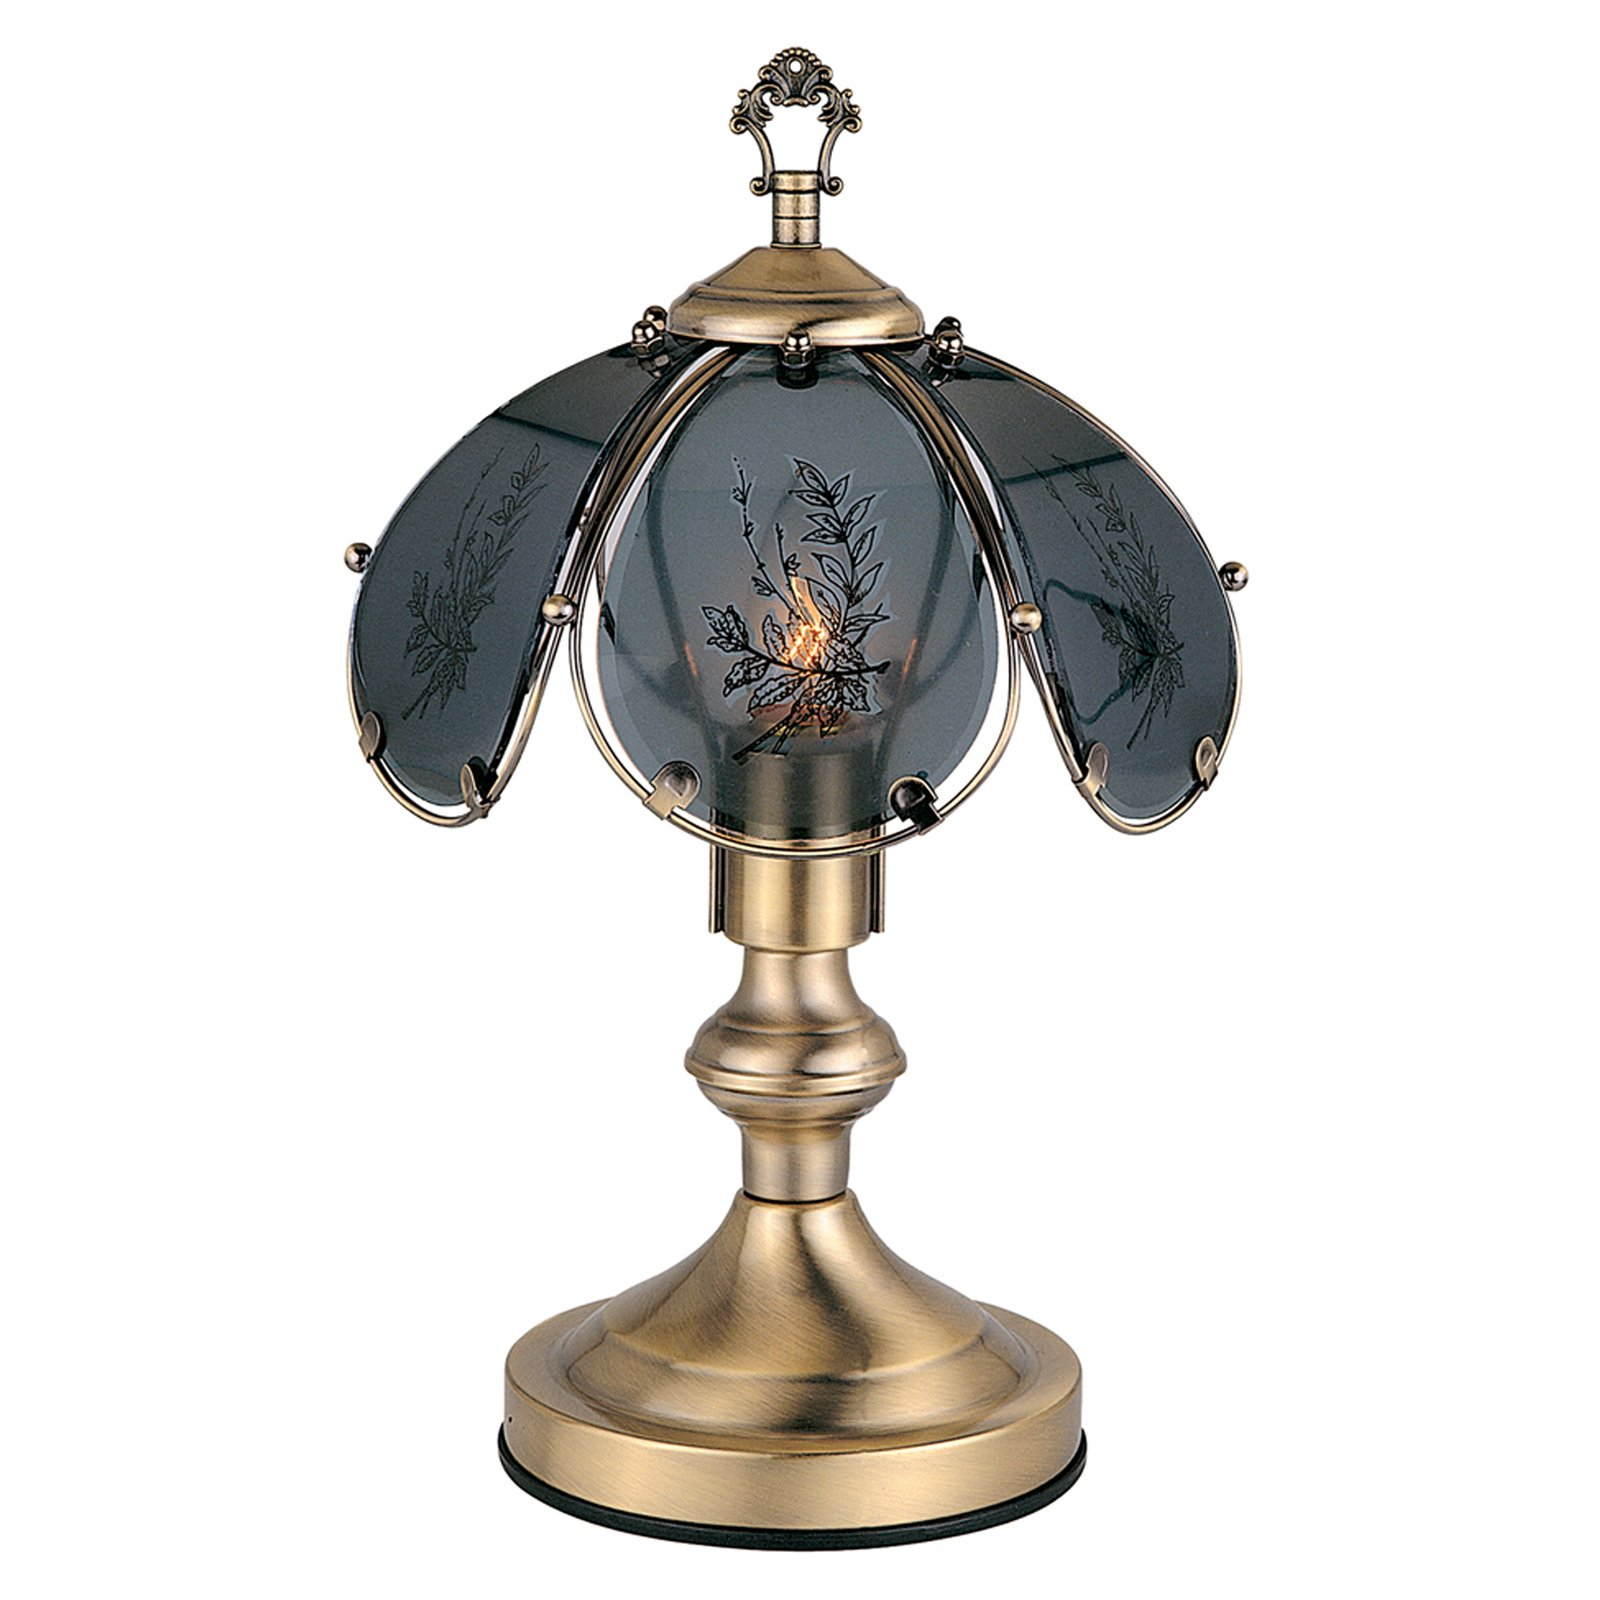 "ORE International 14.25"" Wheat Barley Touch Lamp, Antique Brass"